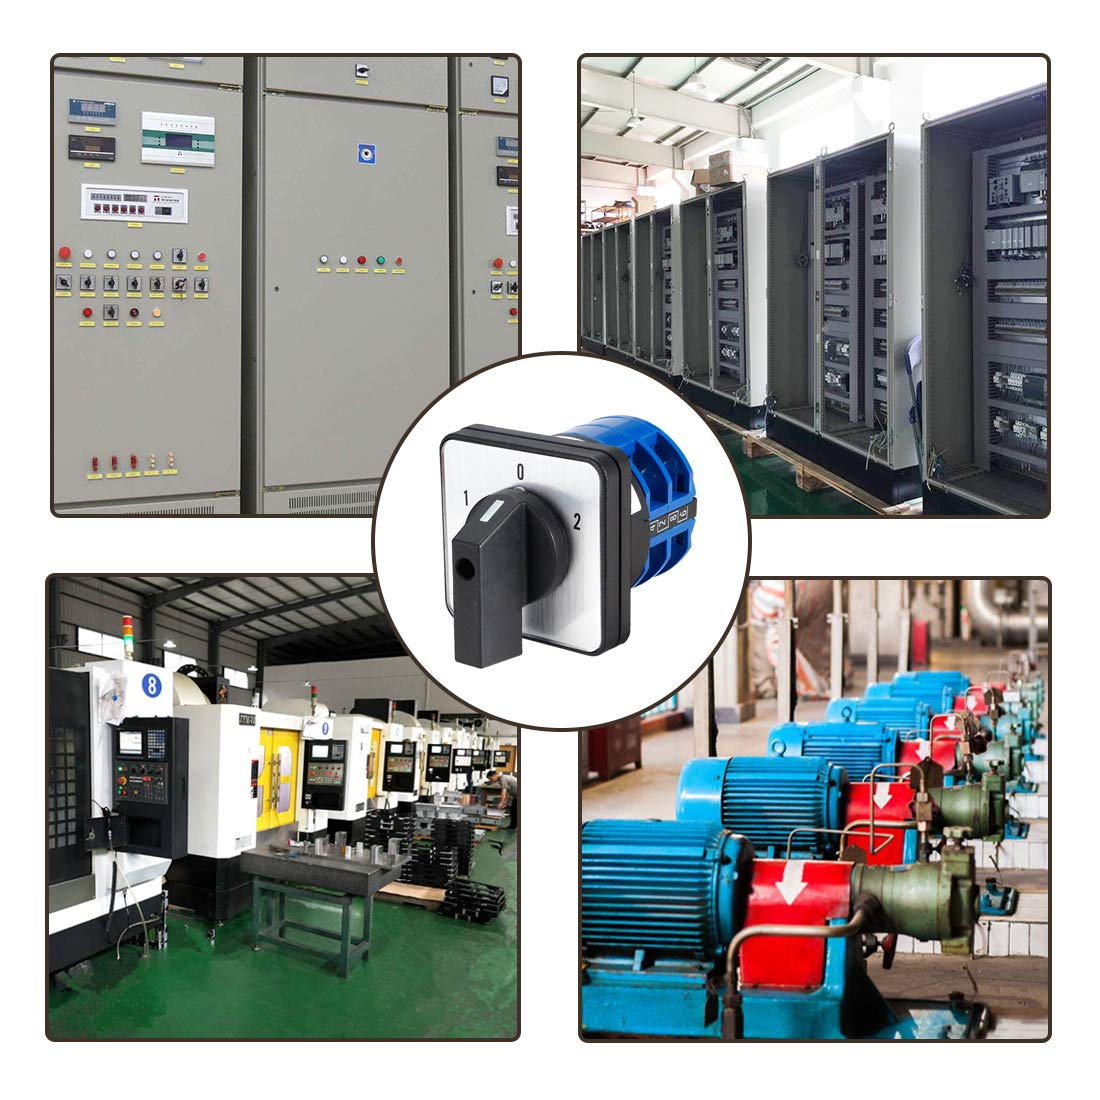 VictorsHome Changeover Switch LW28-20 3 Positions 8 Terminals Universal Rotary Cam Selector Latching Switches 550V 20A